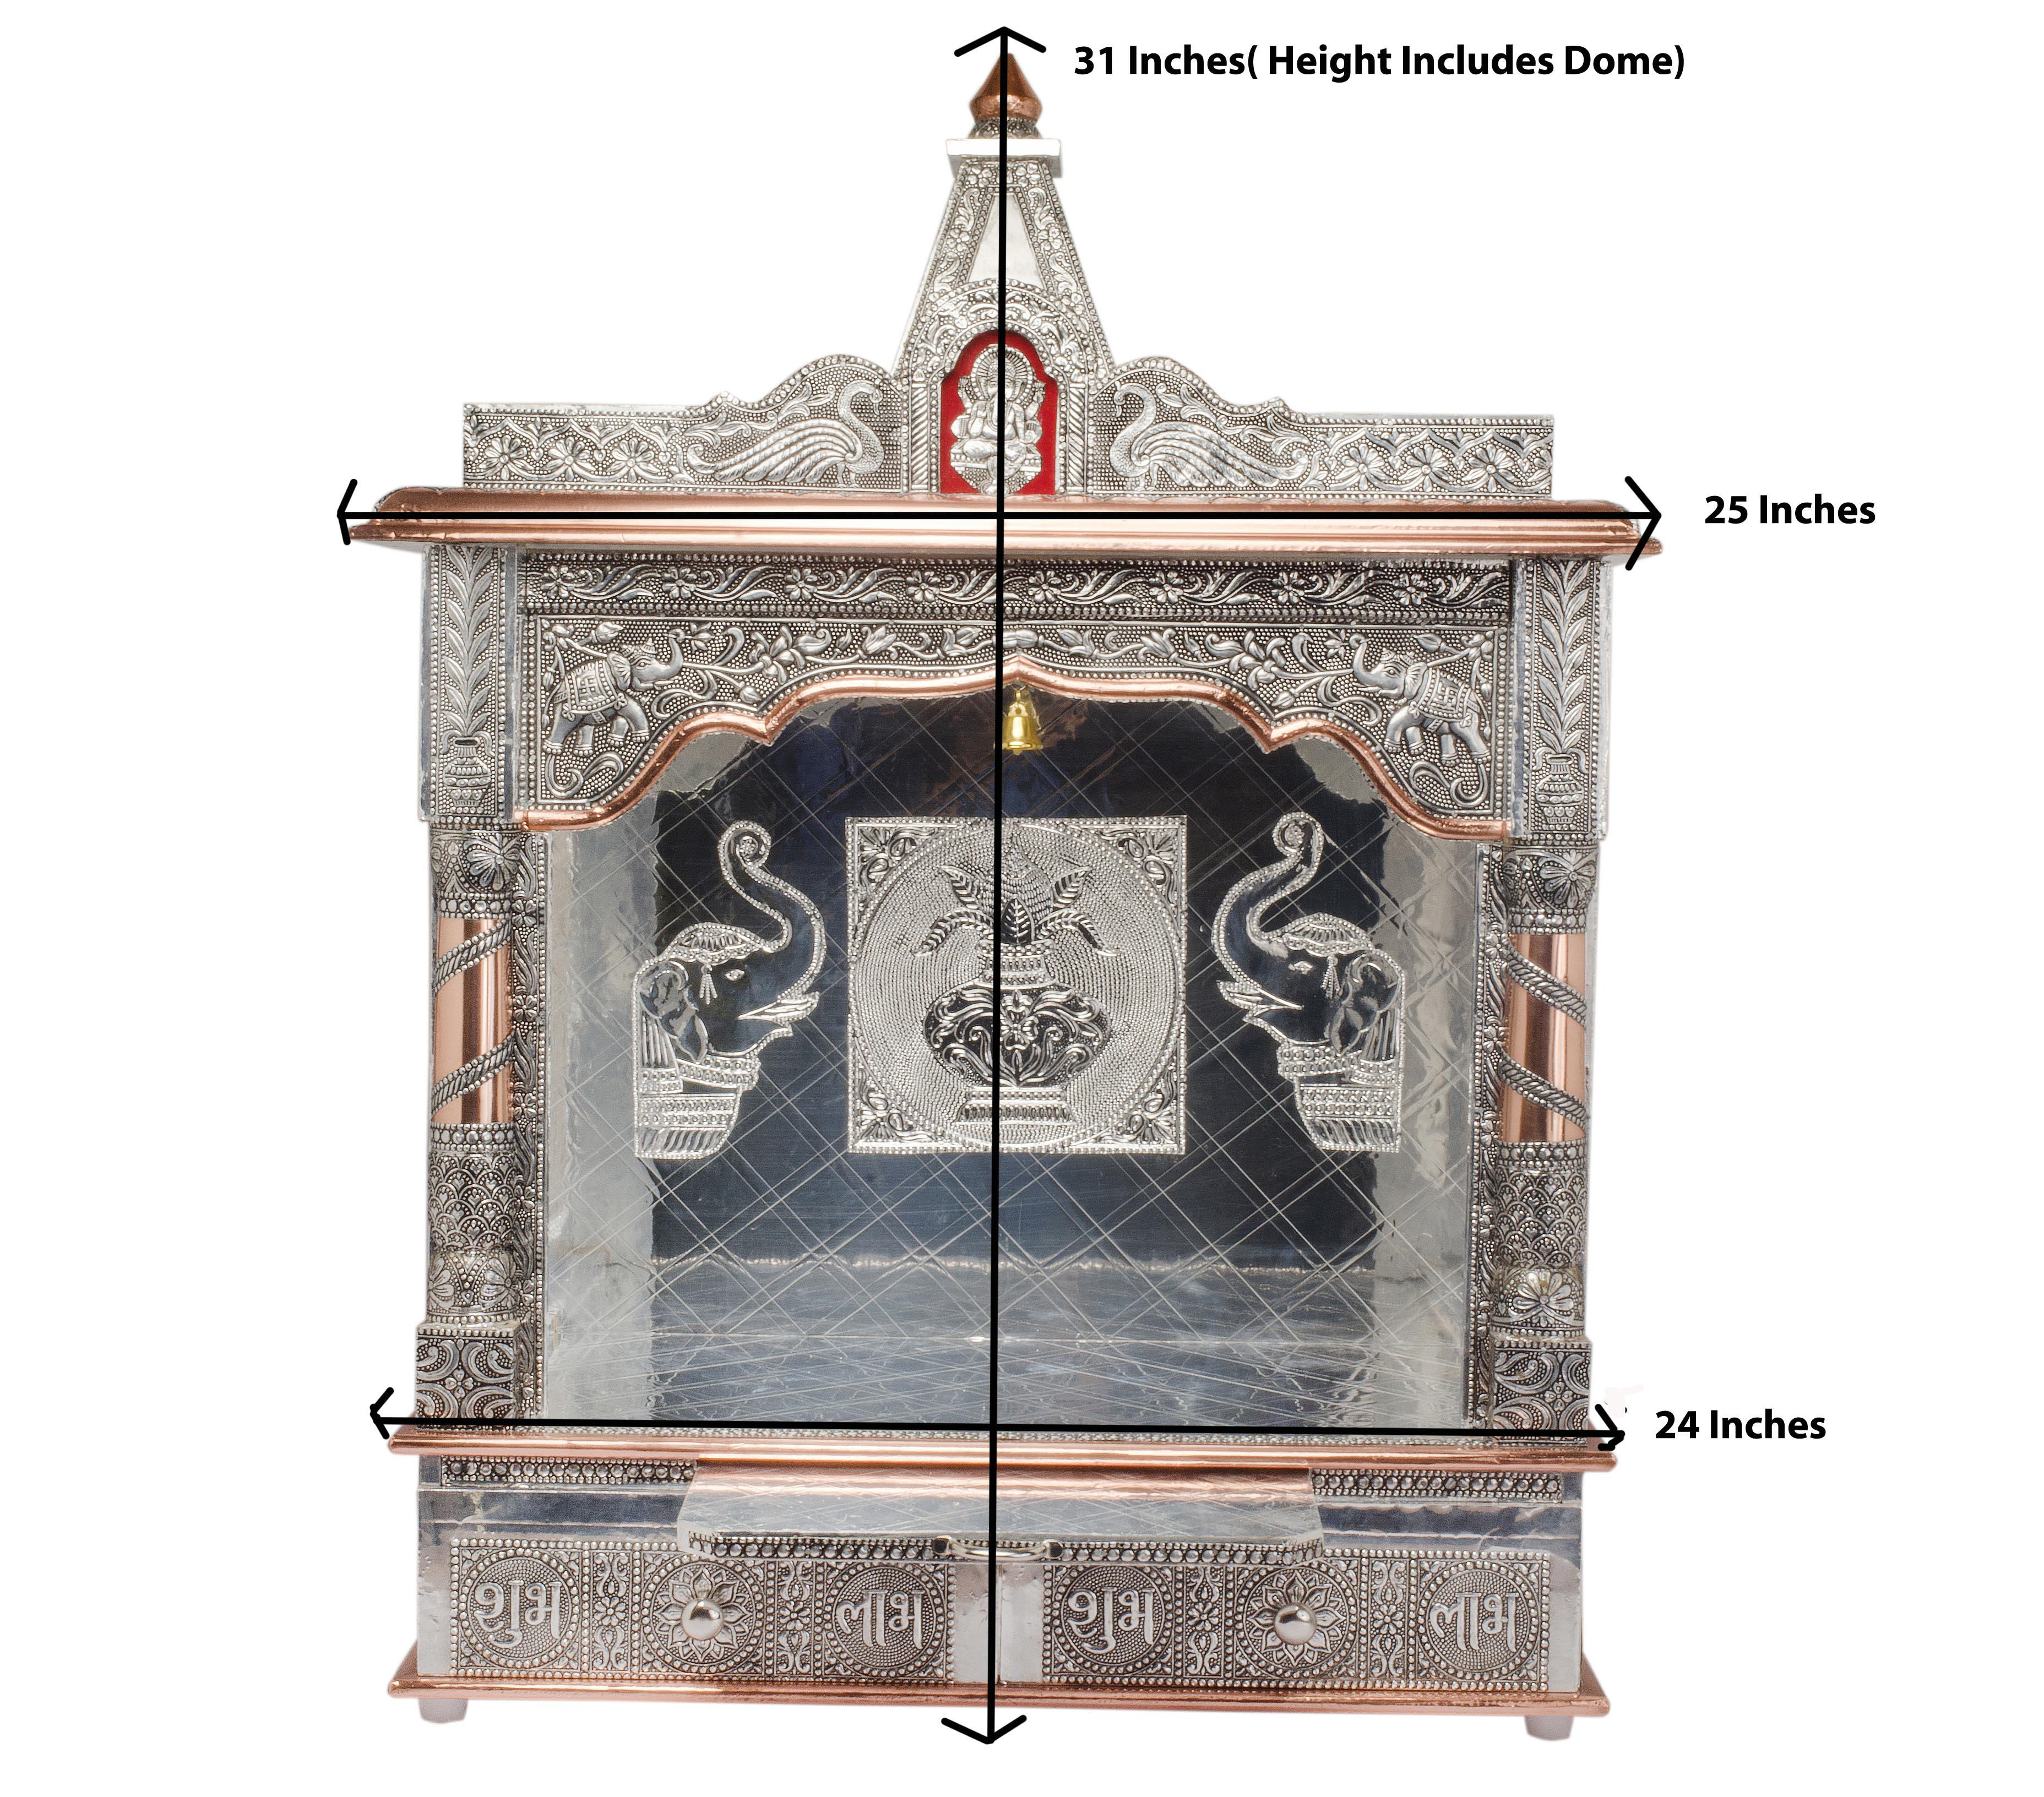 Best Kitchen Gallery: Hindu Puja Mandir Temple For Home Altar W O Doors 25 X 10 X 31 of Home For Hindu Temple Usa on rachelxblog.com